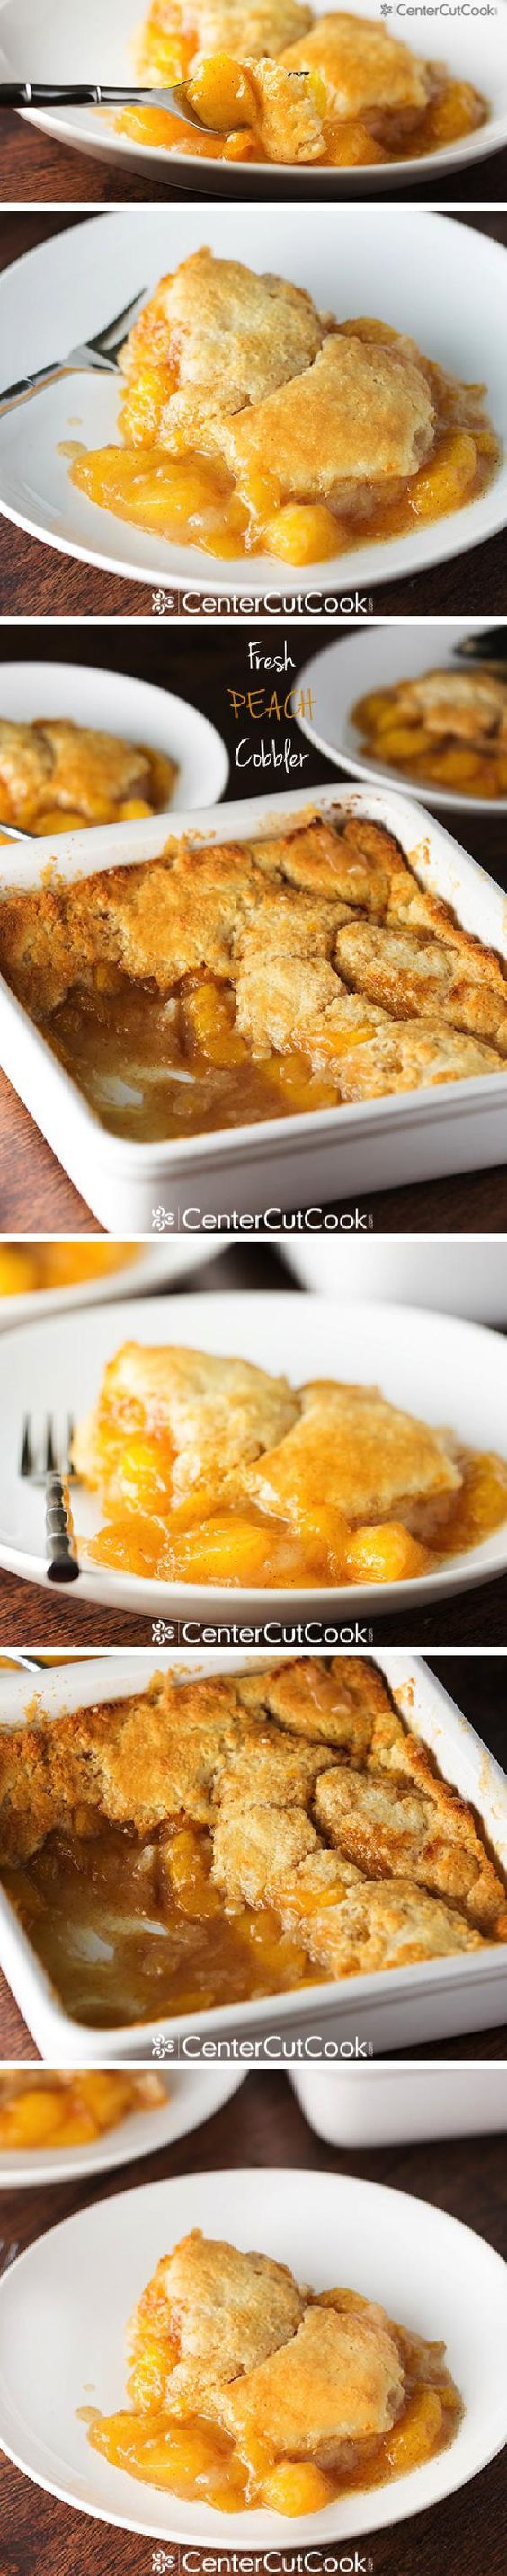 FRESH PEACH COBBLER - This timeless summer dessert features fresh juicy peaches, hints of cinnamon, and a buttery light batter that is baked until golden brown and delicious!